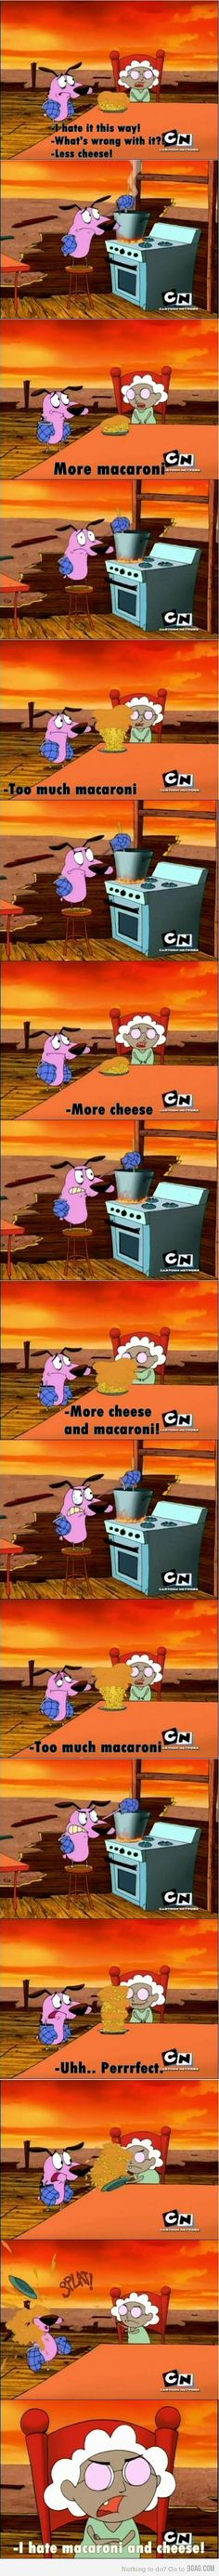 I remember watching this, and I love Macaroni and Cheese